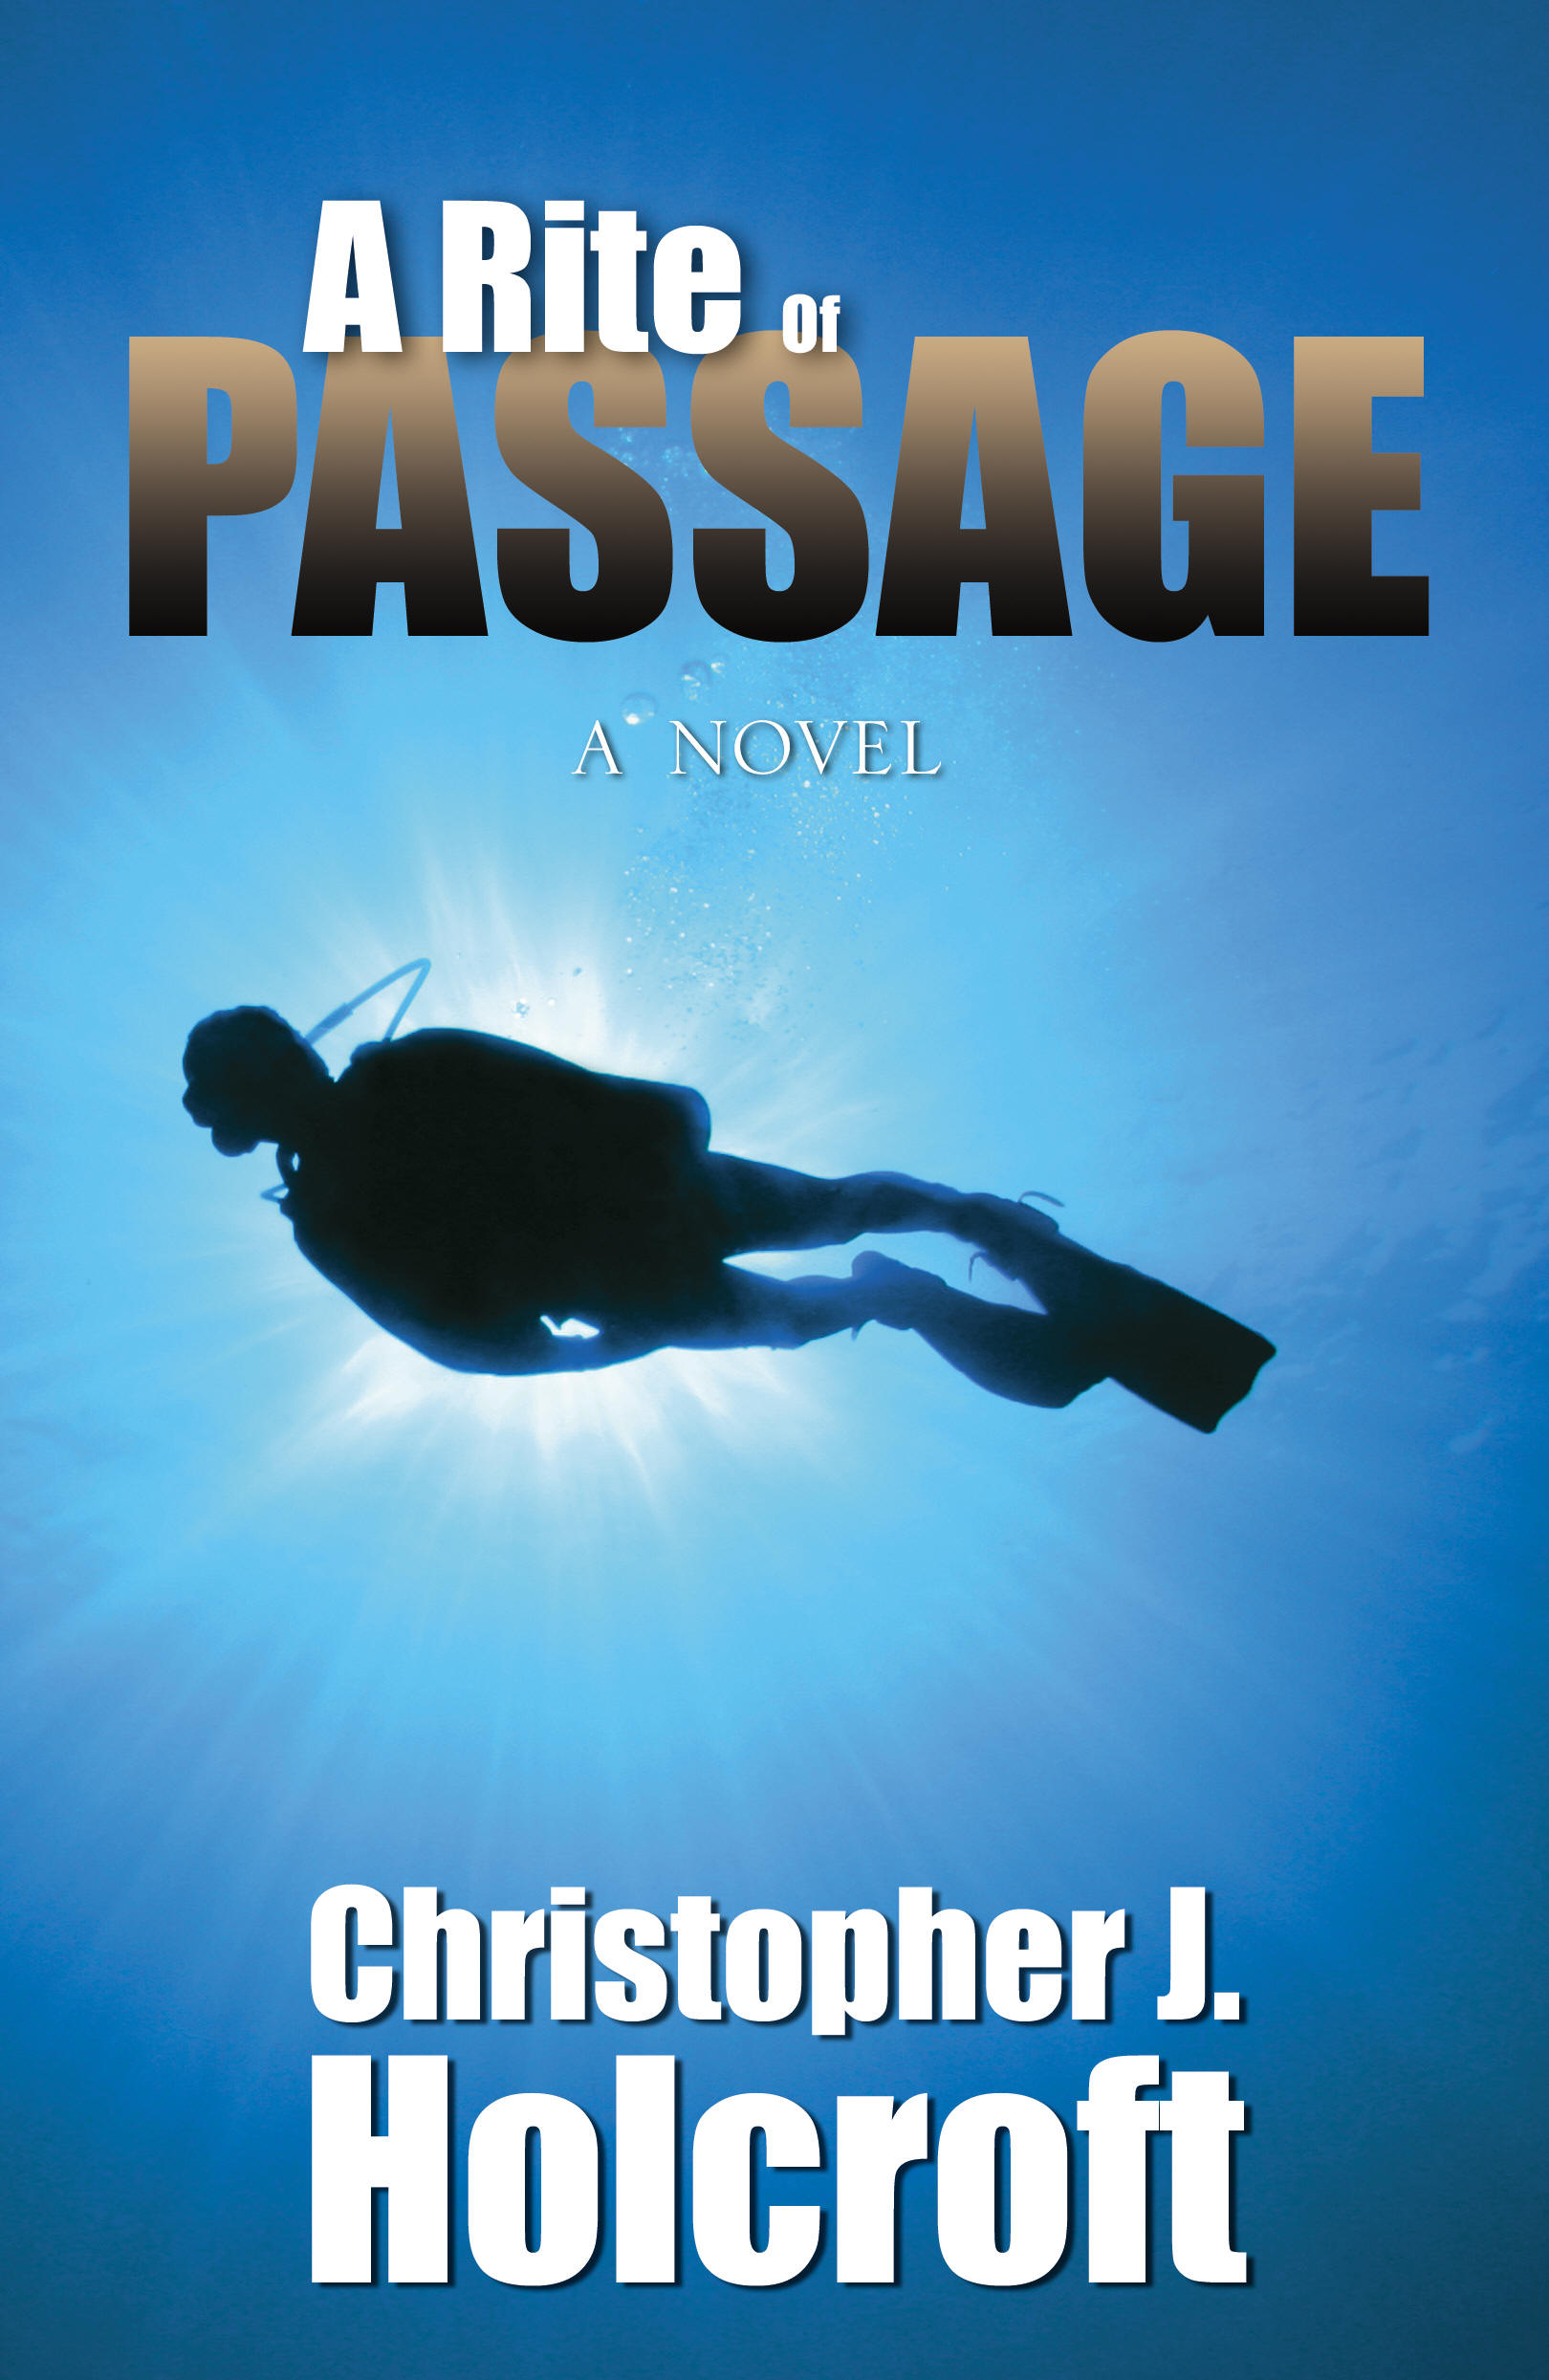 A Rite Of Passage by Christopher J. Holcroft